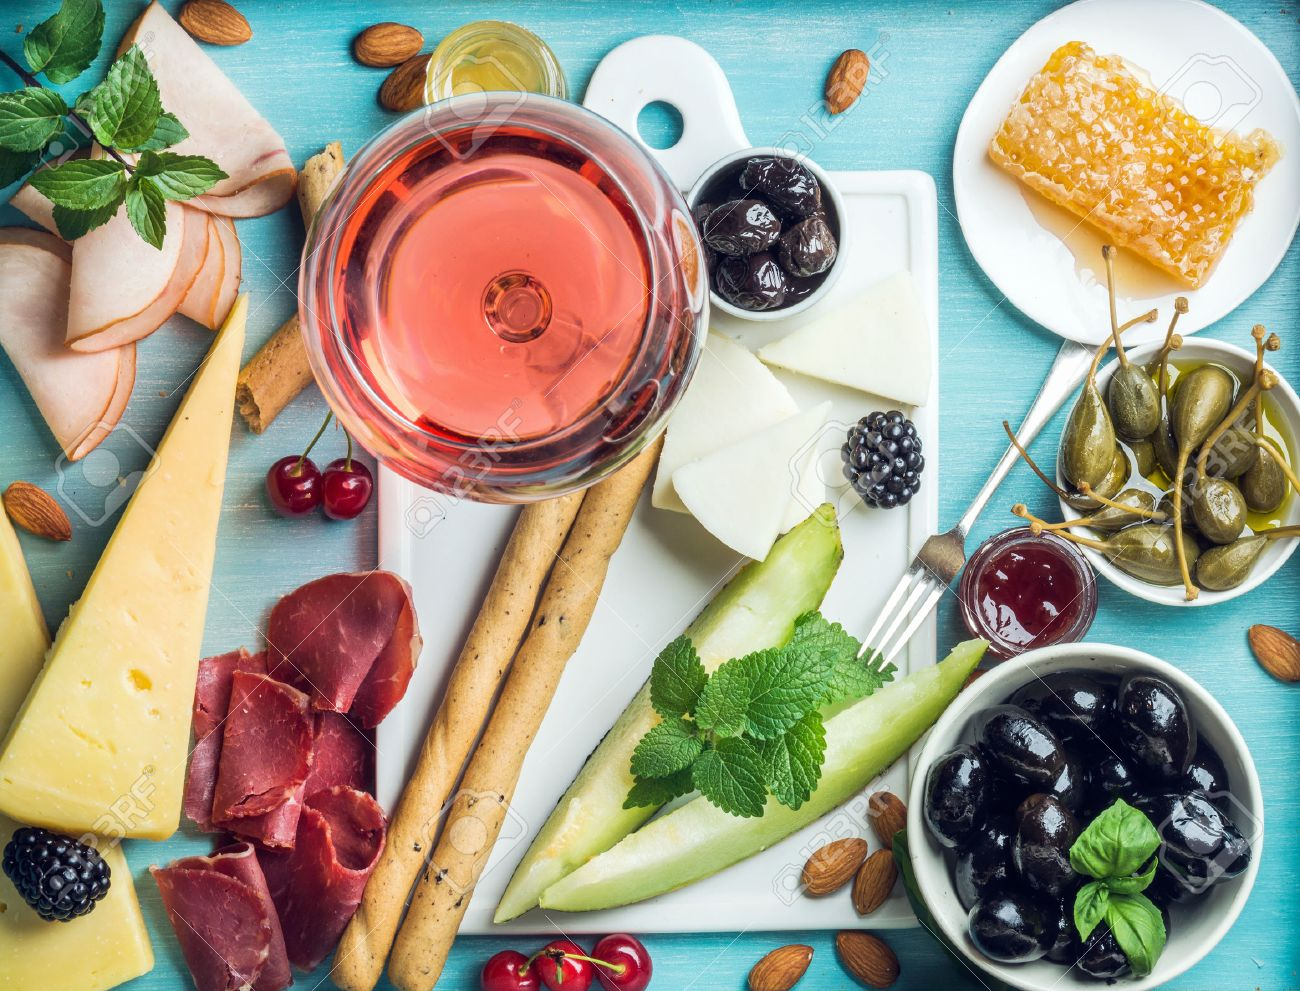 Summer wine snack set. Glass of rose, meat, cheese, olives, honey, bread sticks, nuts, capers and berries with white ceramic board in center, blue wooden background, top view - 58853529